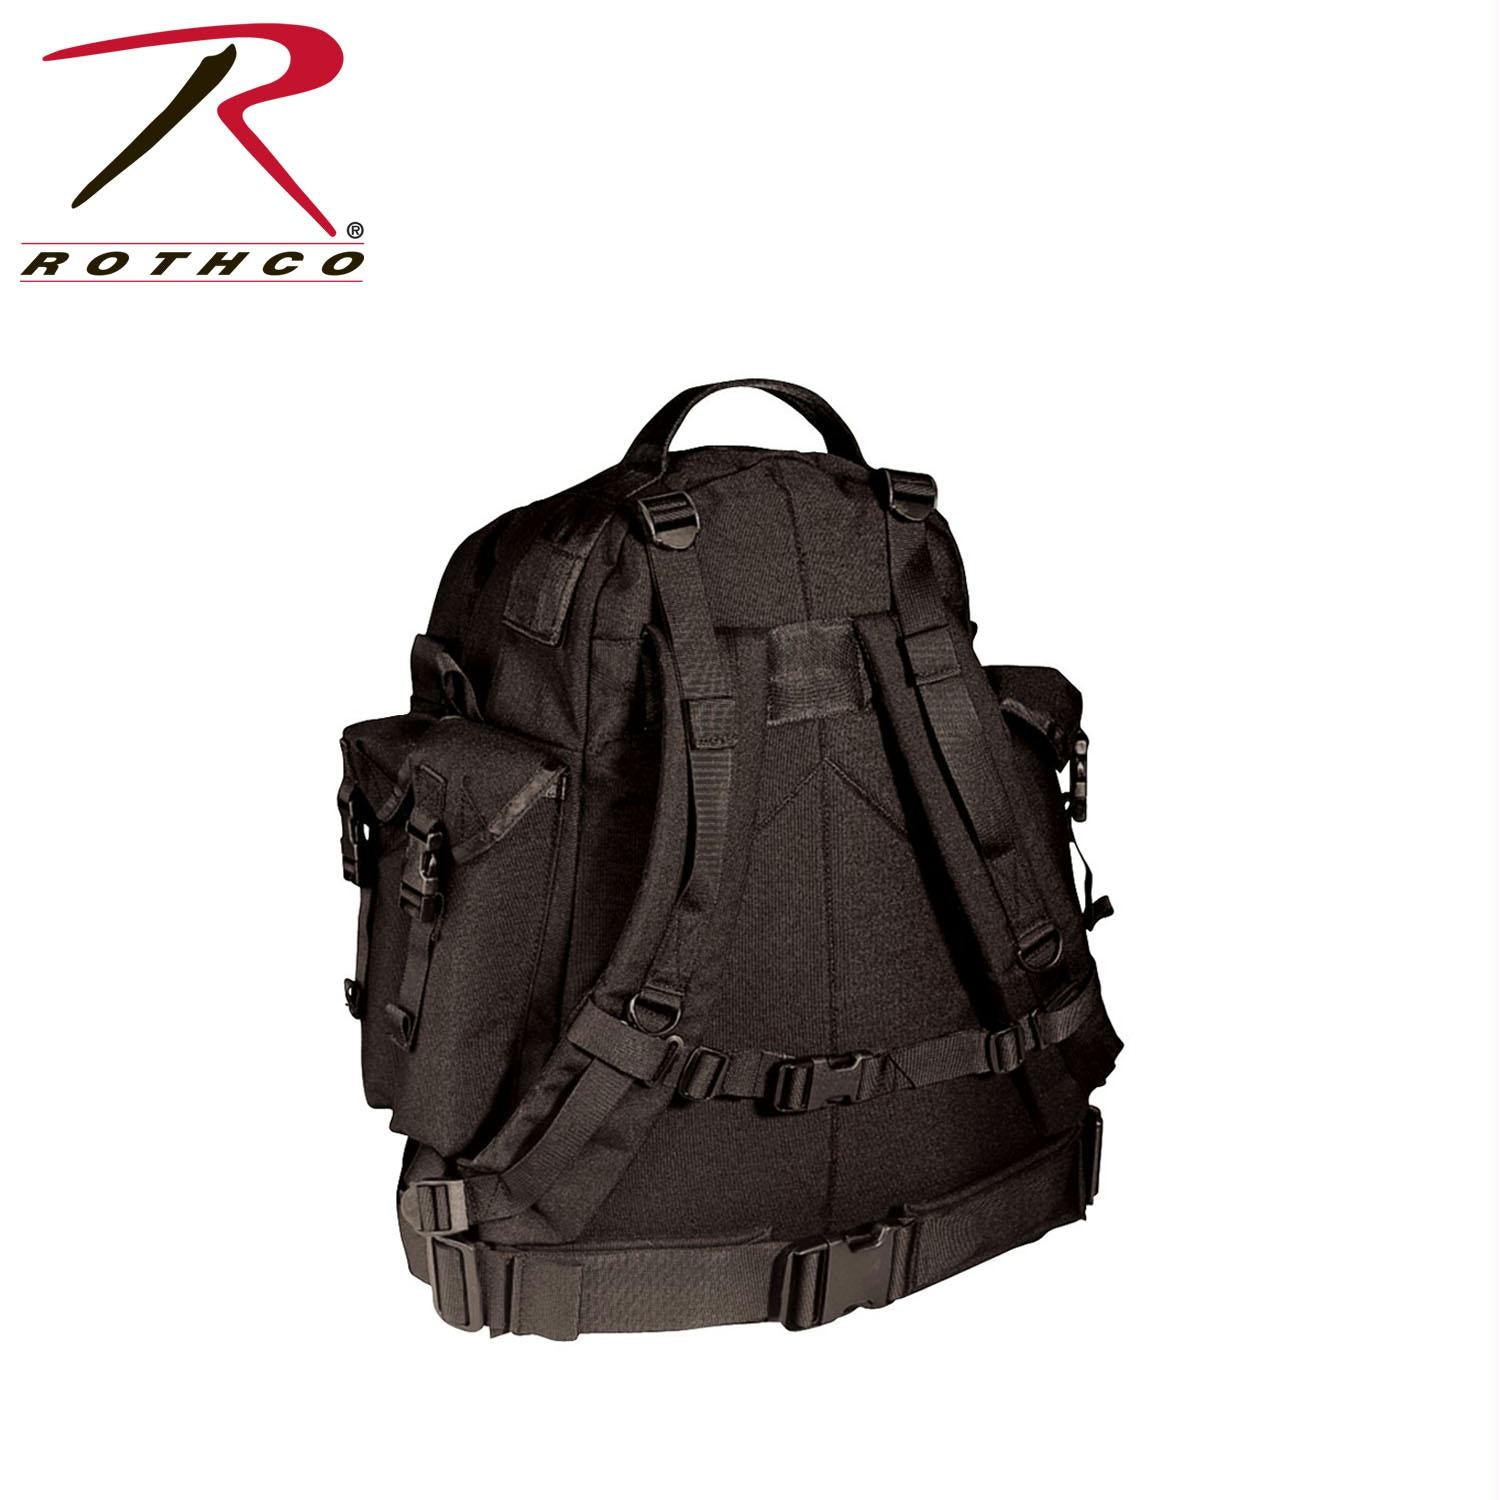 Rothco Special Forces Assault Pack - Black